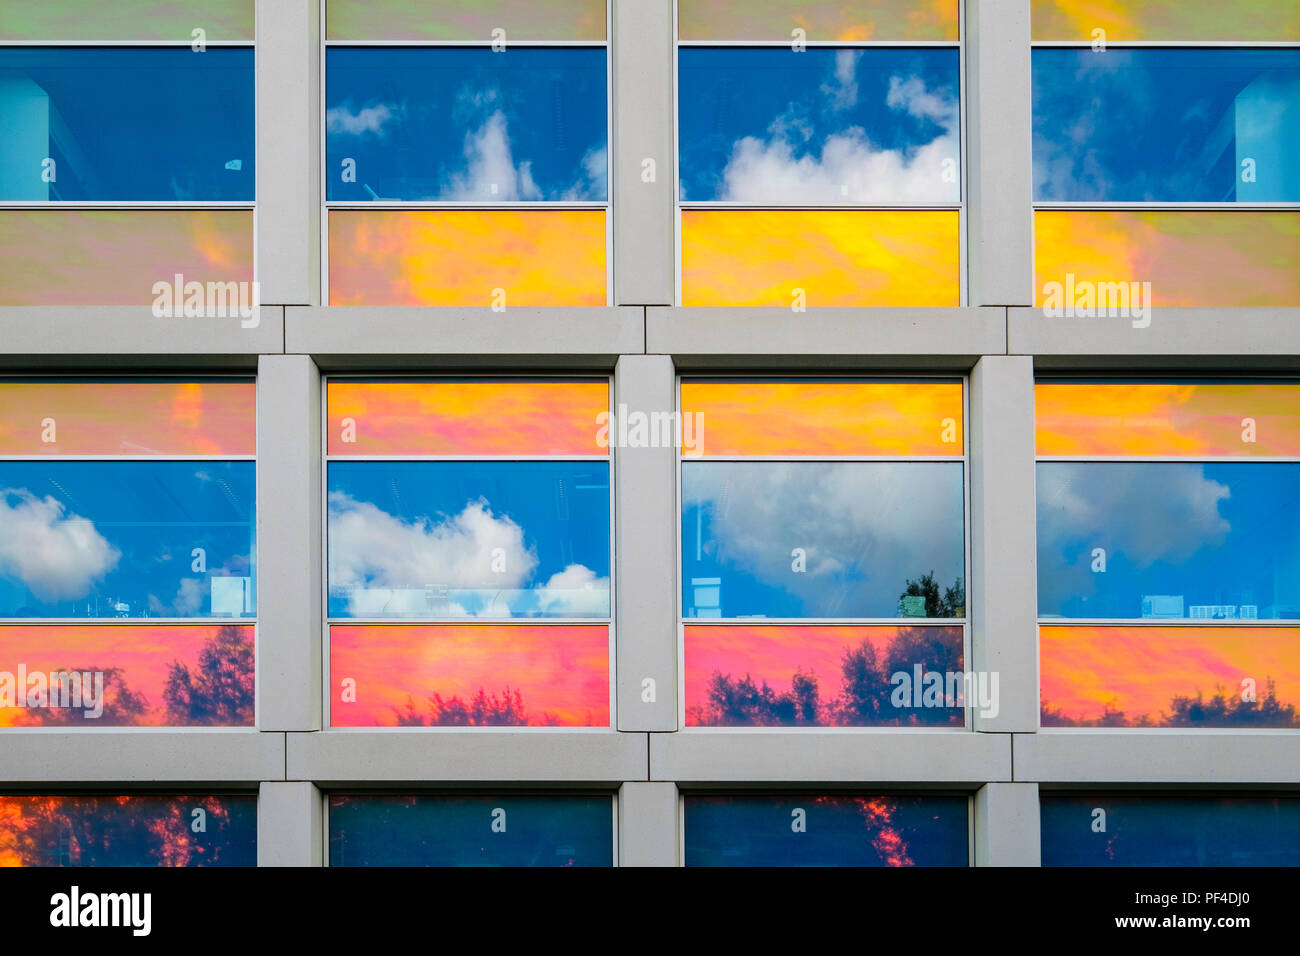 Reflections in colorful coated windows - Stock Image